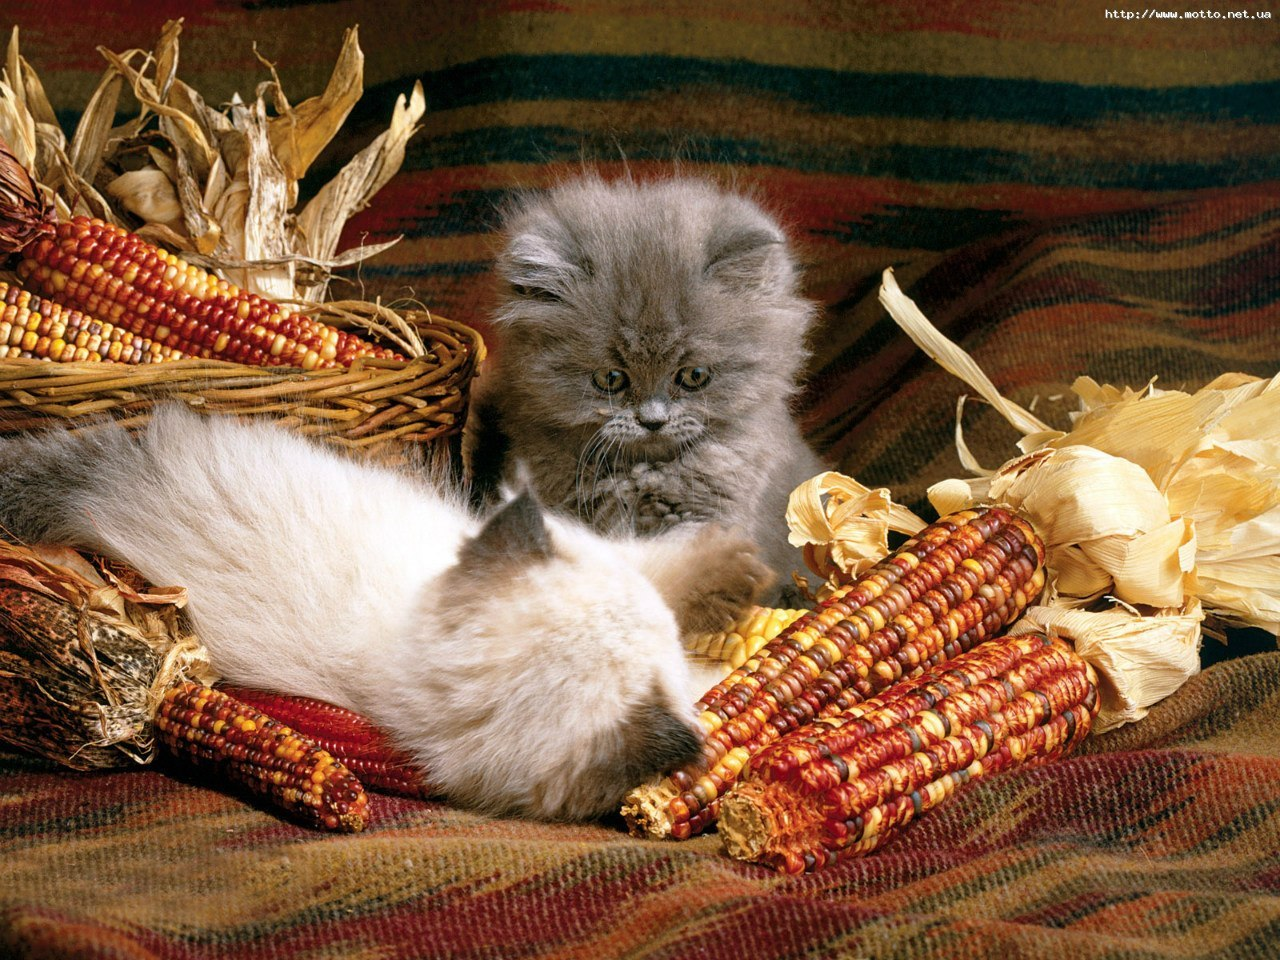 15963 download wallpaper Animals, Cats screensavers and pictures for free